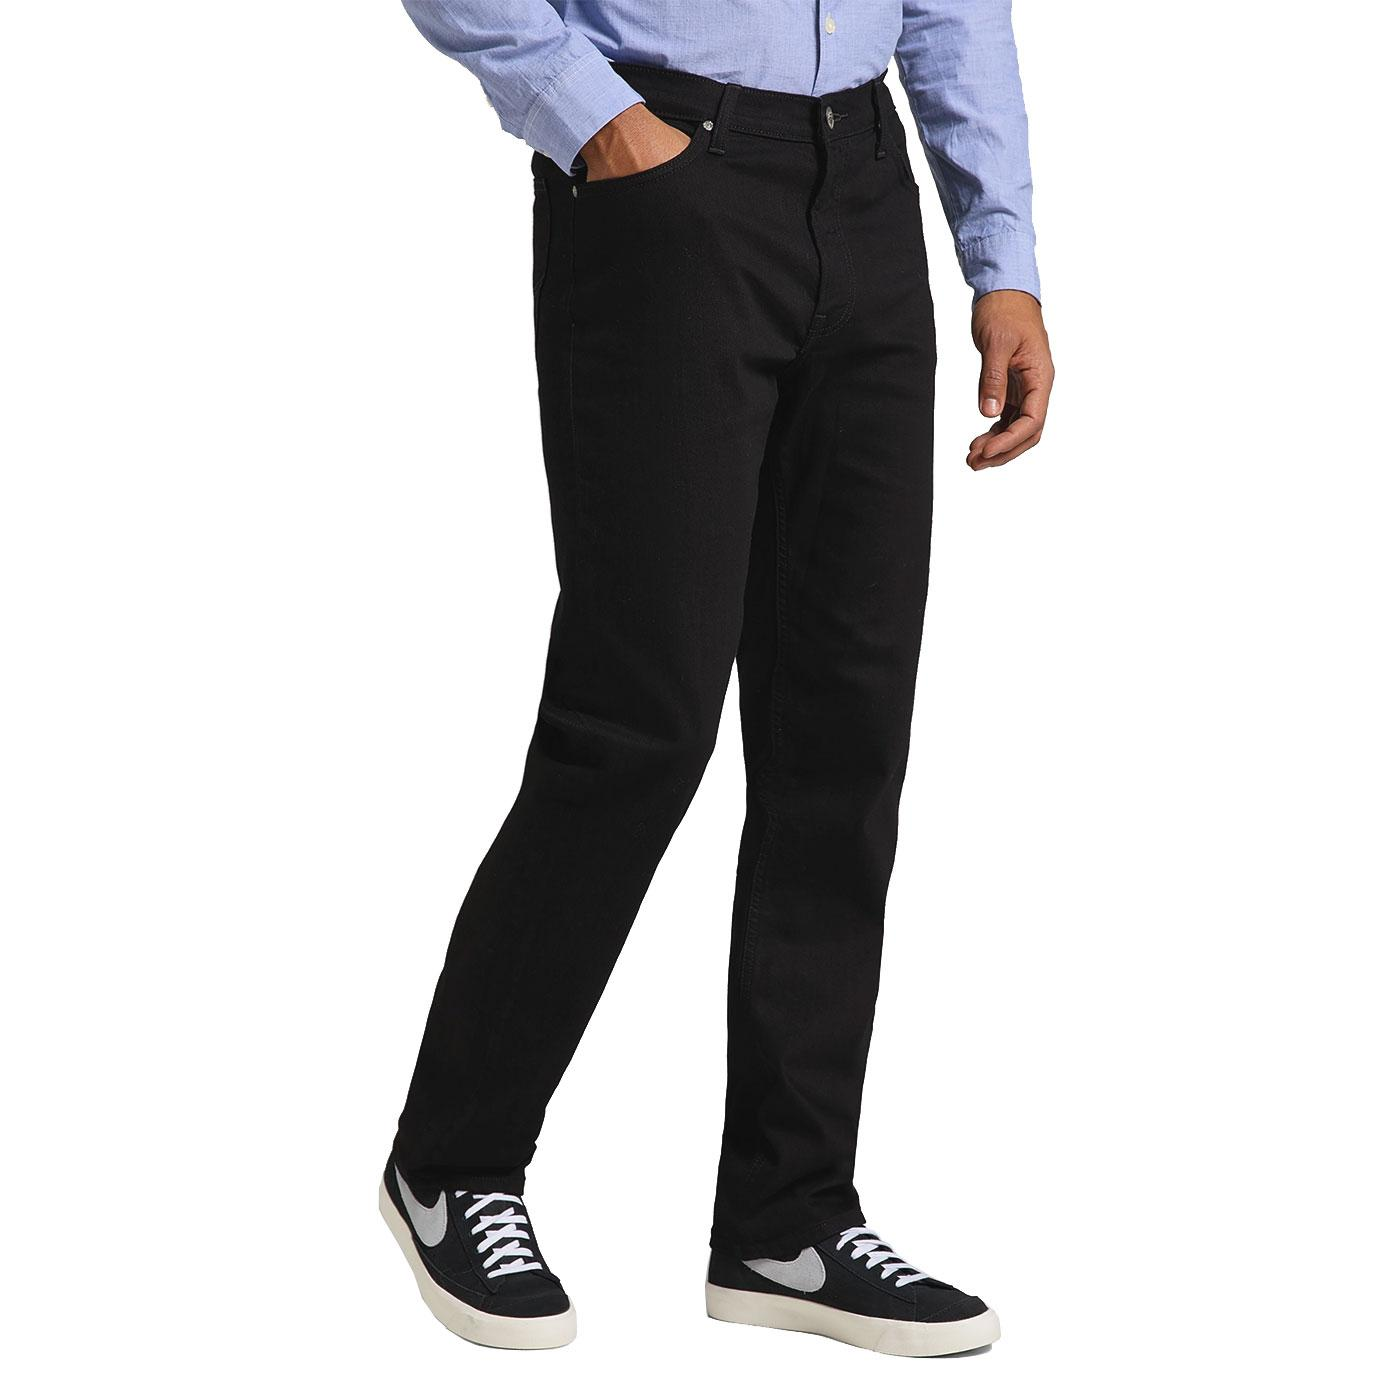 West LEE JEANS Relaxed Straight Jeans CLEAN BLACK